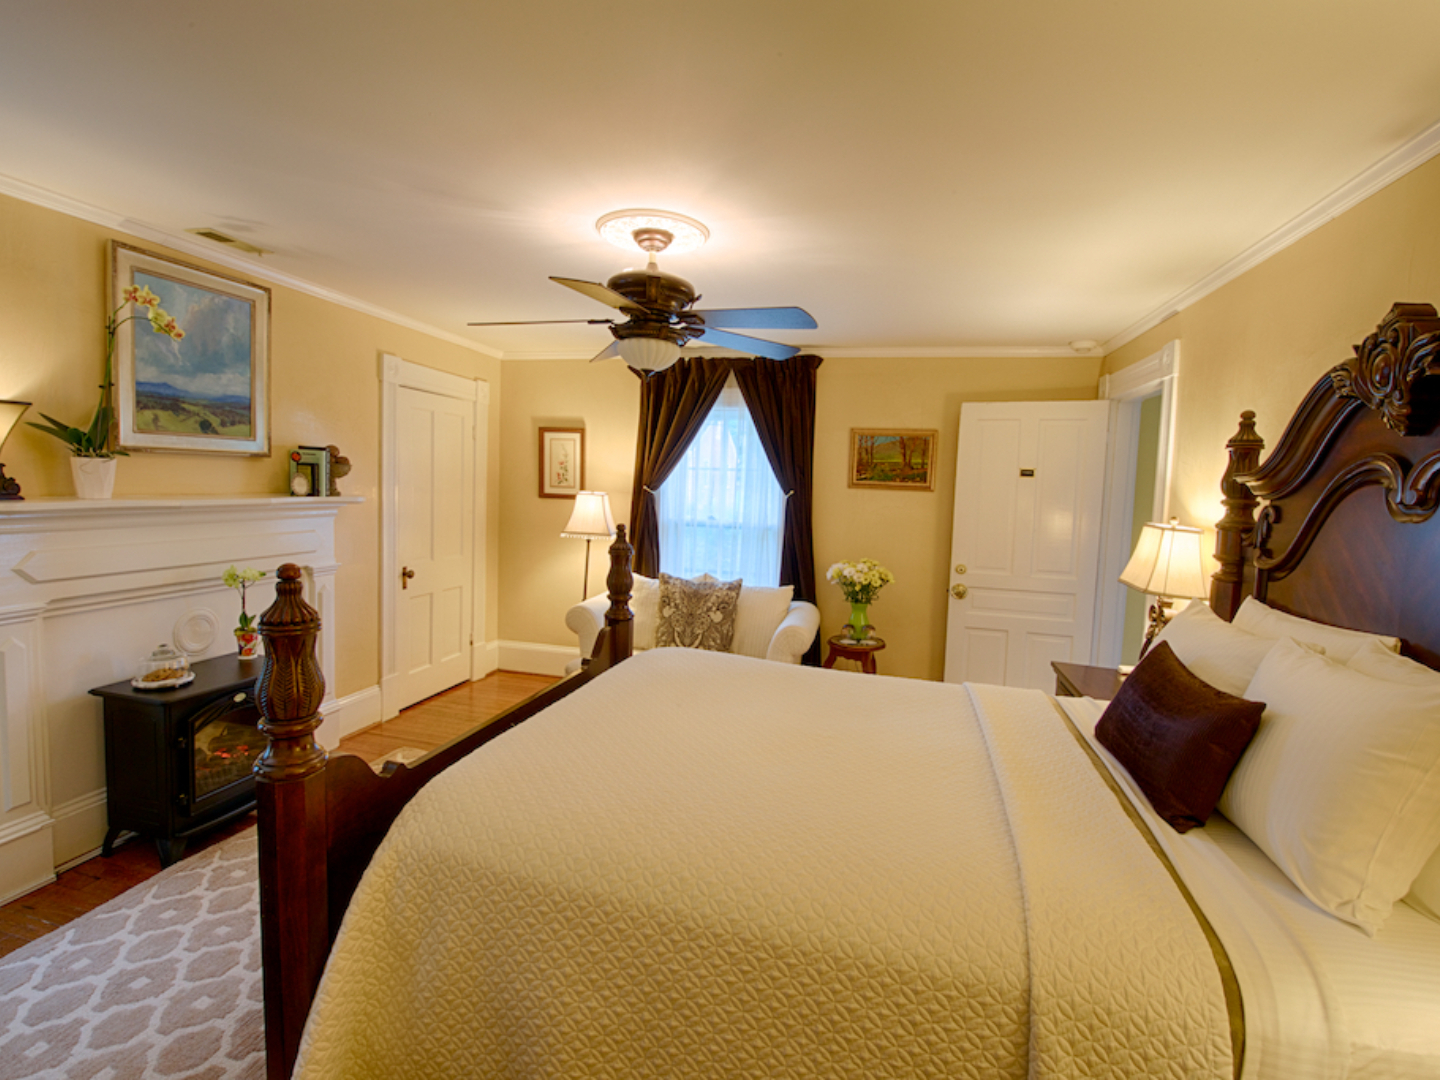 A bedroom with a large bed in a hotel room at Foster Harris House.